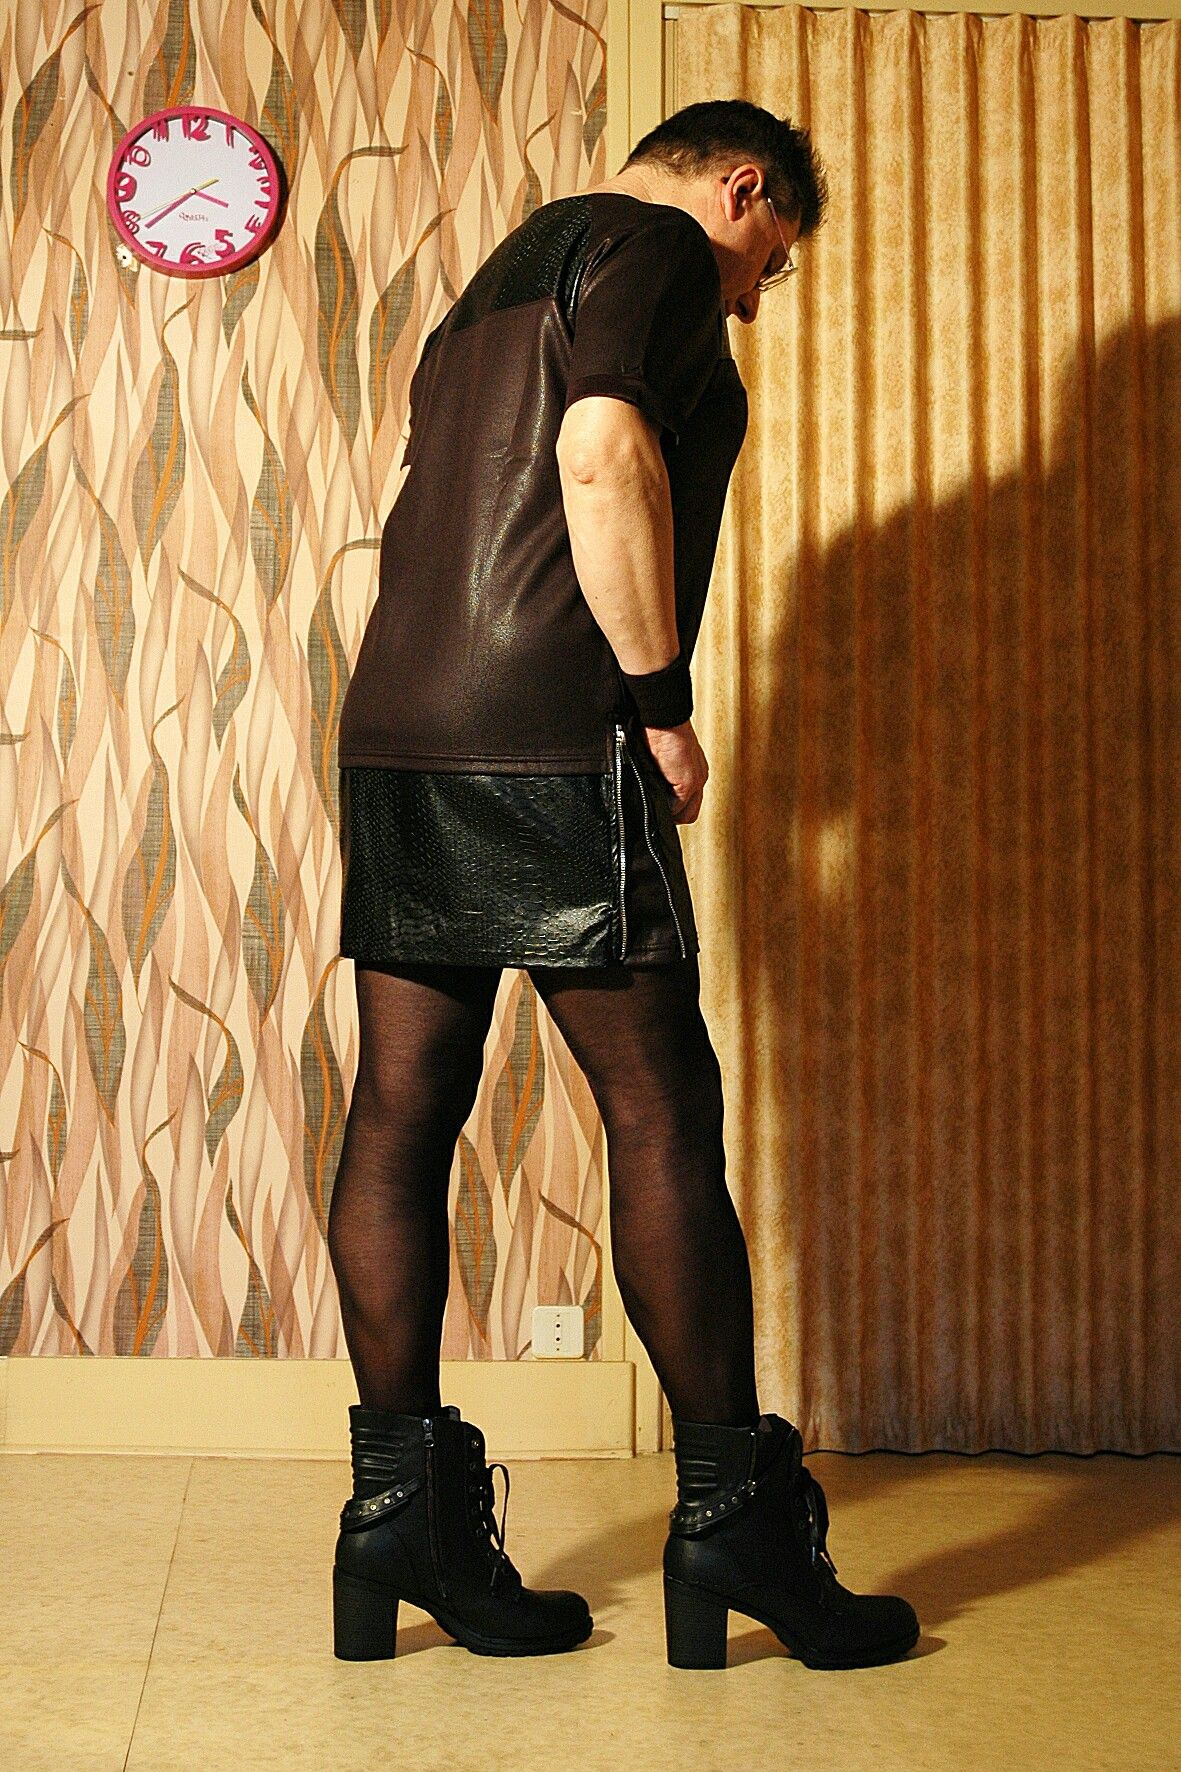 Pantyhose homepages photos